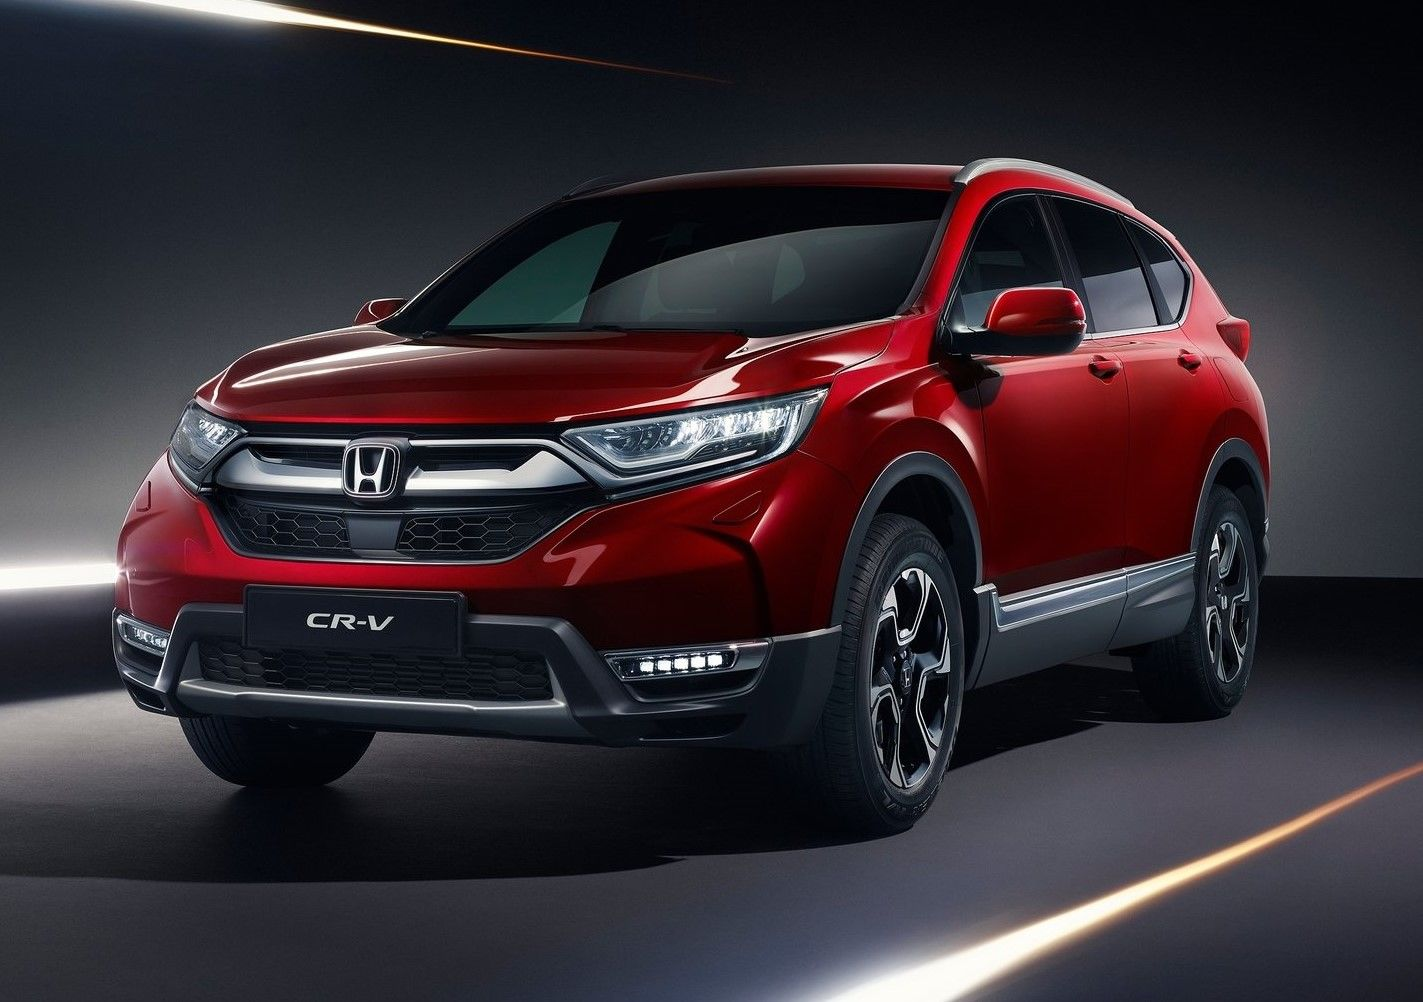 2019 Honda CR-V: The Compact SUV That Fulfills Every Need